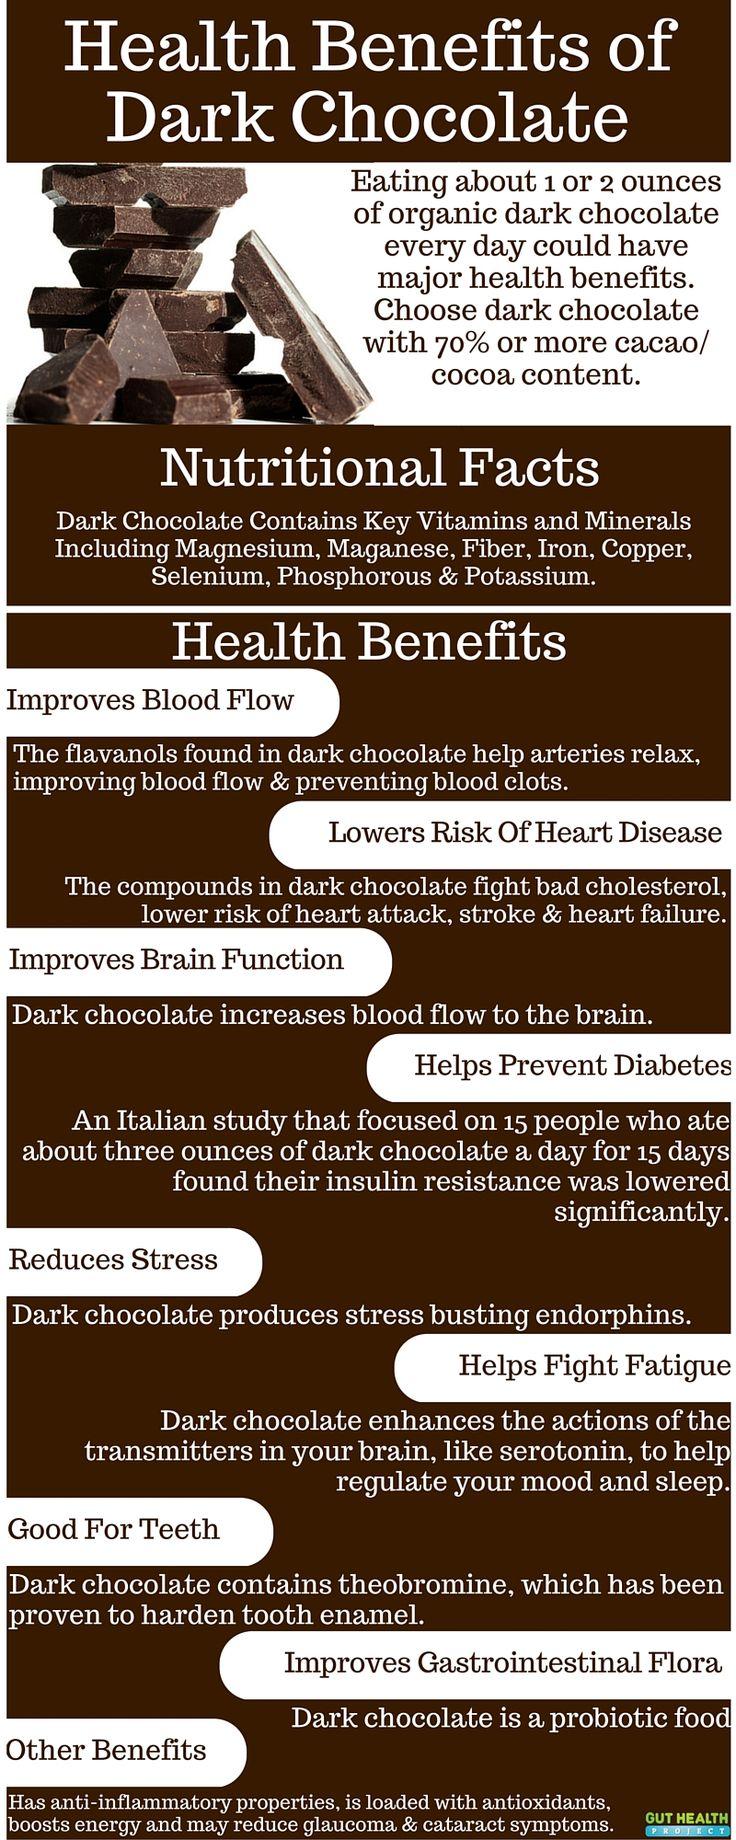 See chocolate can be good for you! I eat a piece a day to kick that craving!